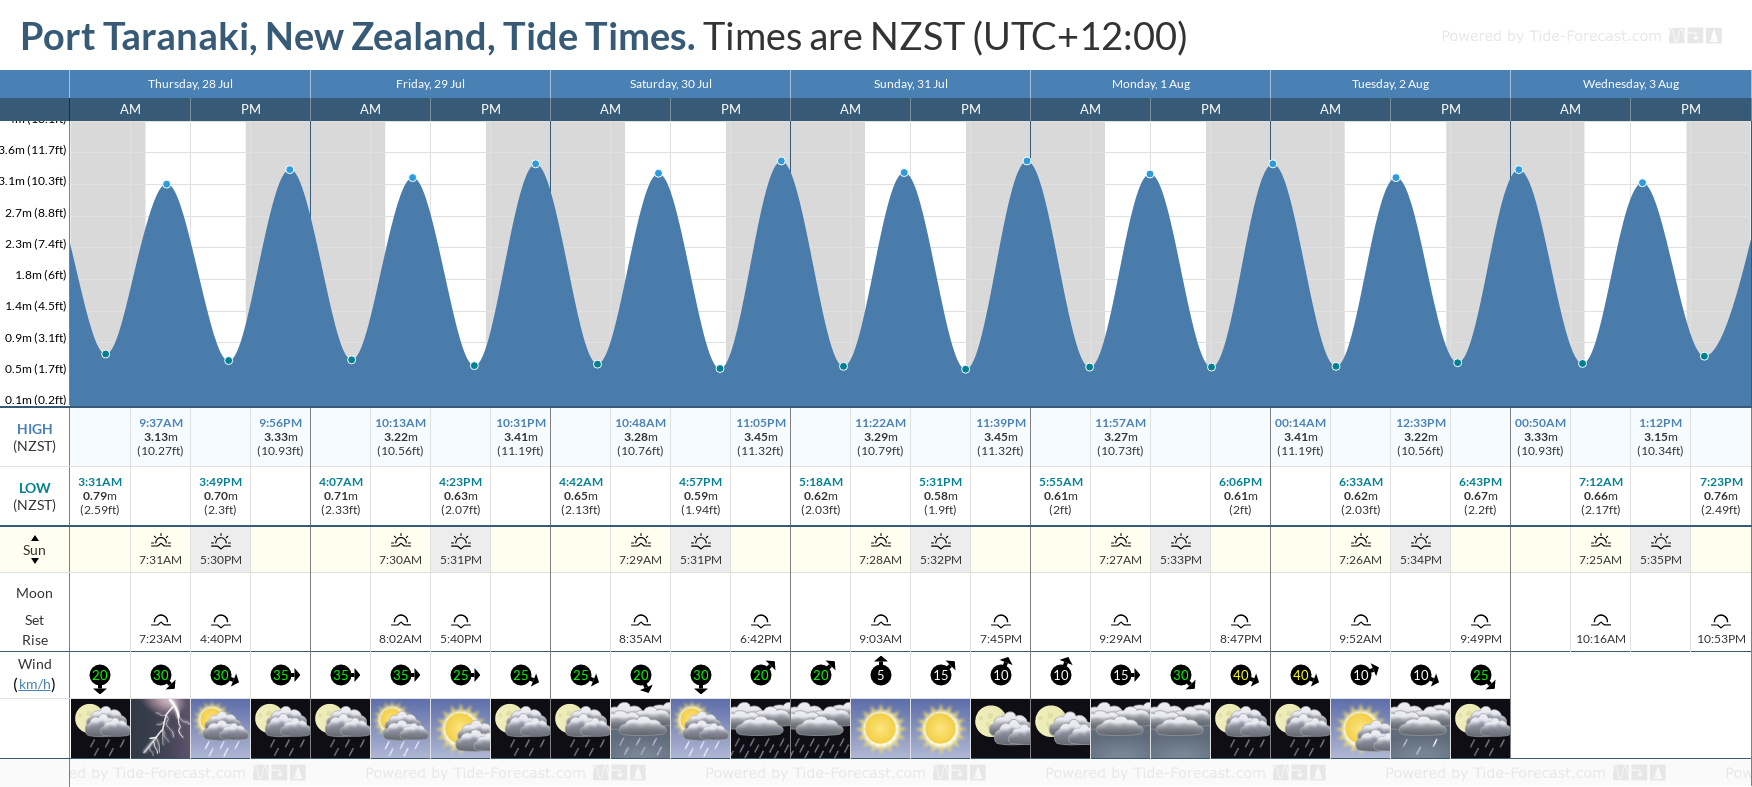 Port Taranaki, New Zealand Tide Chart including high and low tide tide times for the next 7 days